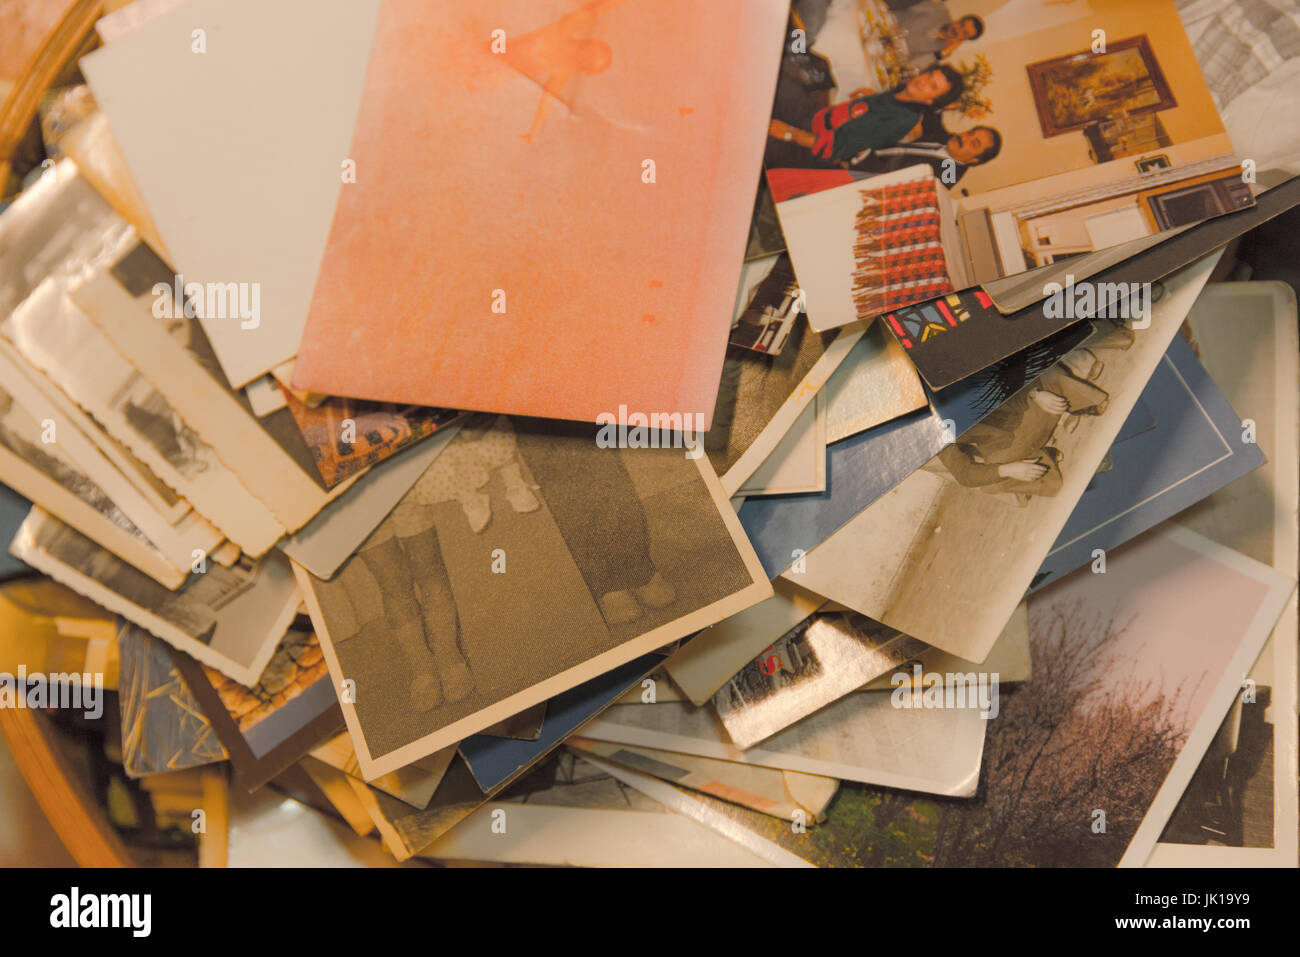 Many Antique and vintage old photos together. - Stock Image